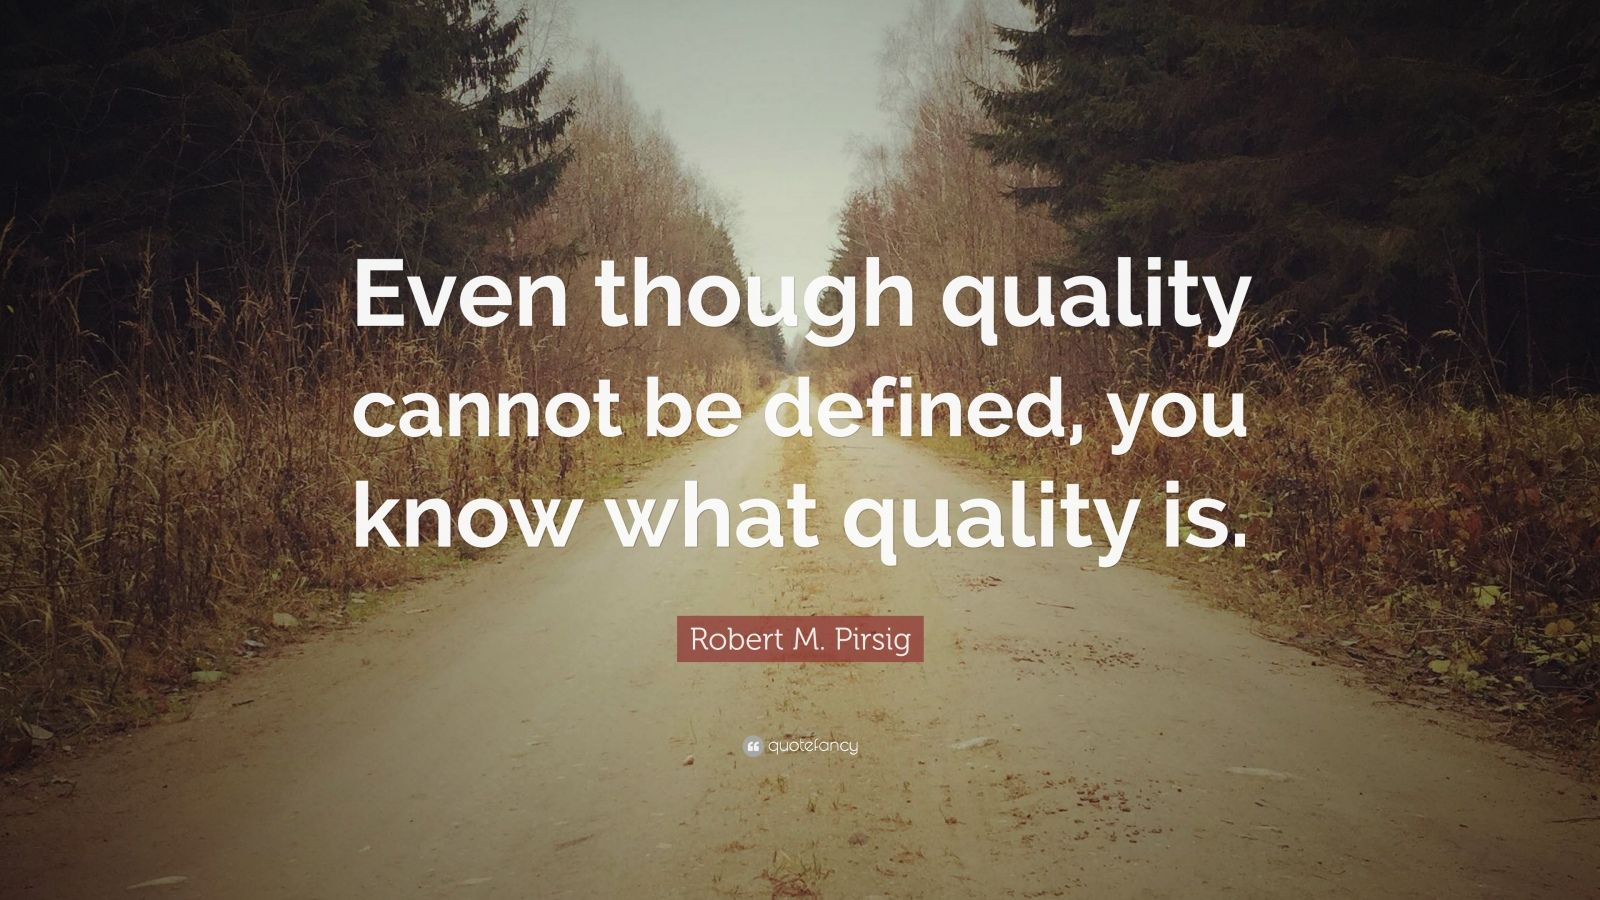 """Robert M. Pirsig Quote: """"Even though quality cannot be defined, you know what quality is."""""""